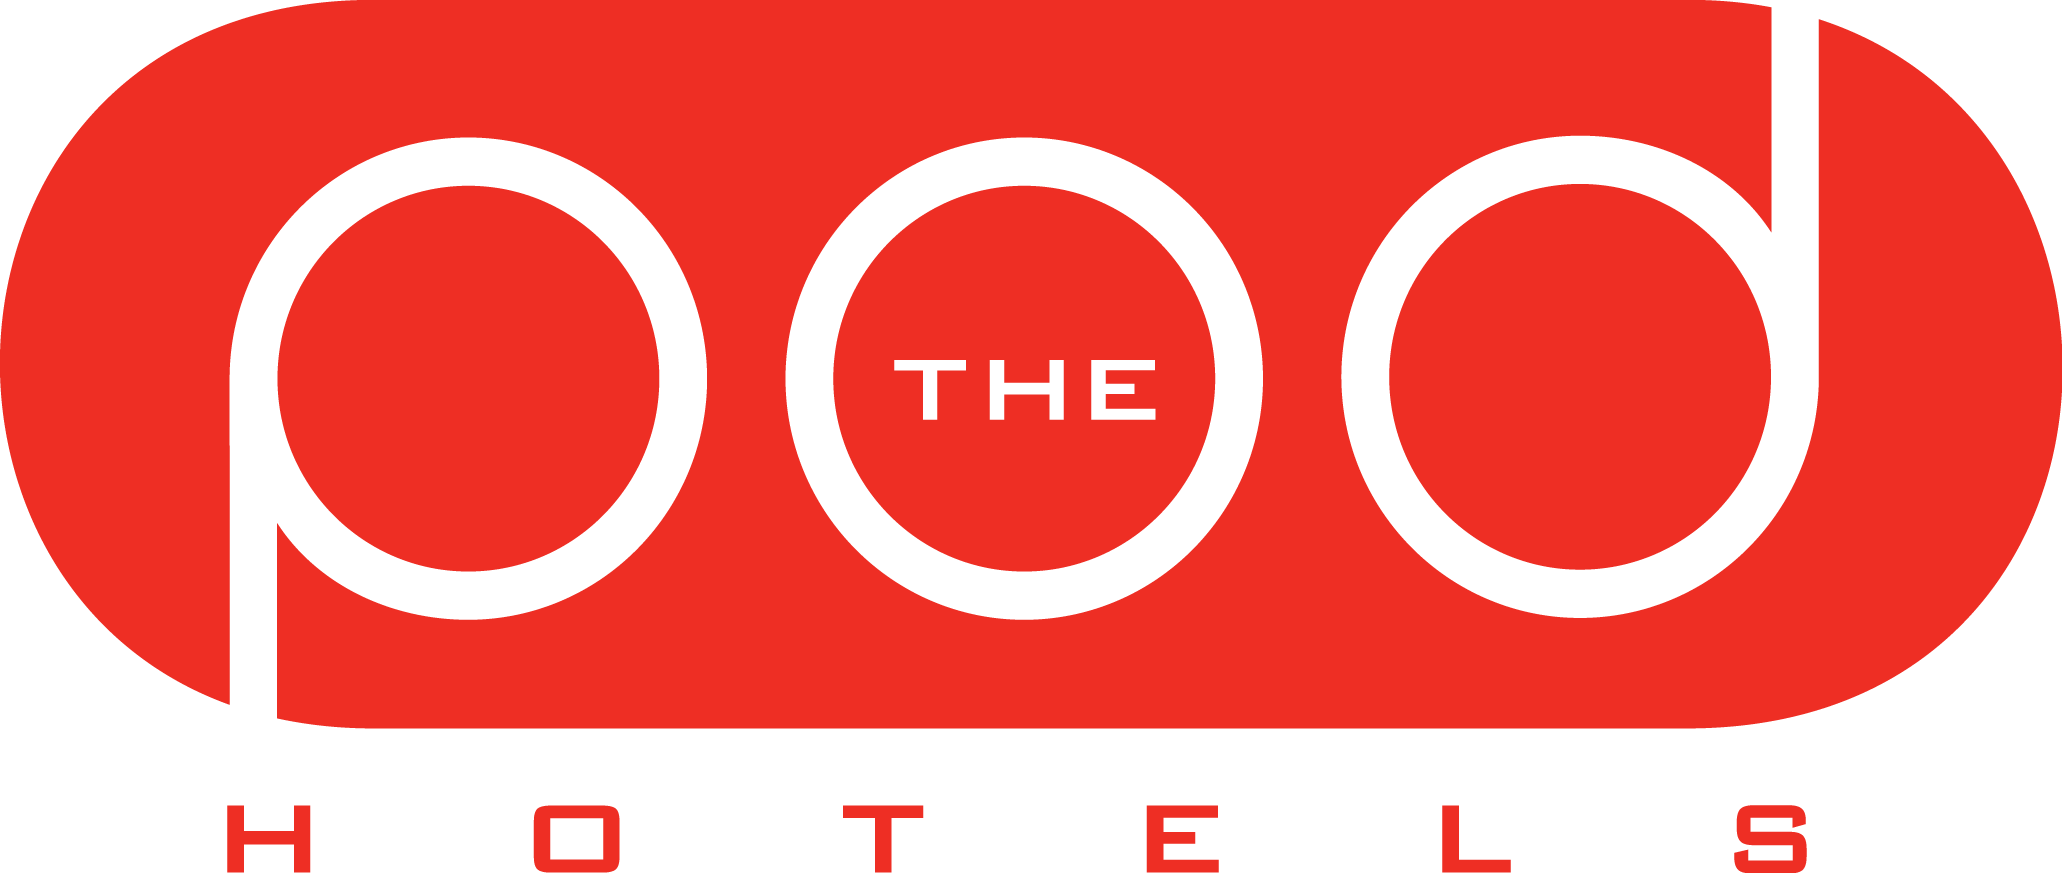 The Pod Hotel Coupons